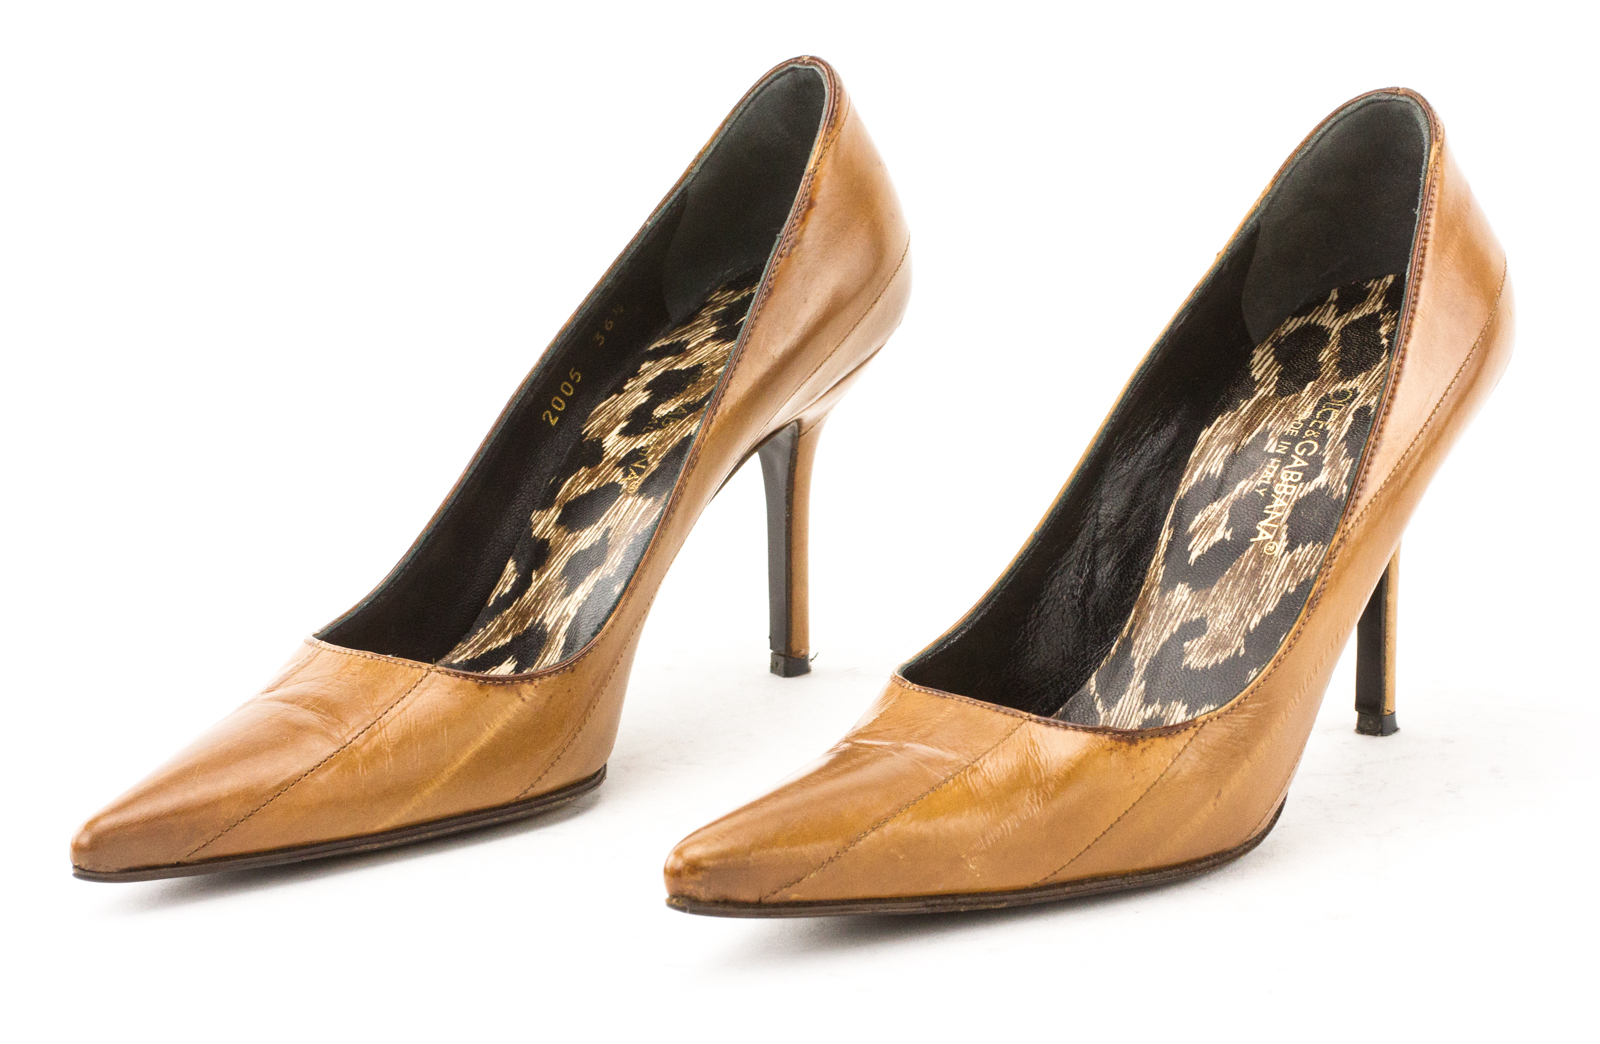 Dolce & Gabbana Pumps eel leather Big Discount Cheap Online XyGpu4dhKW